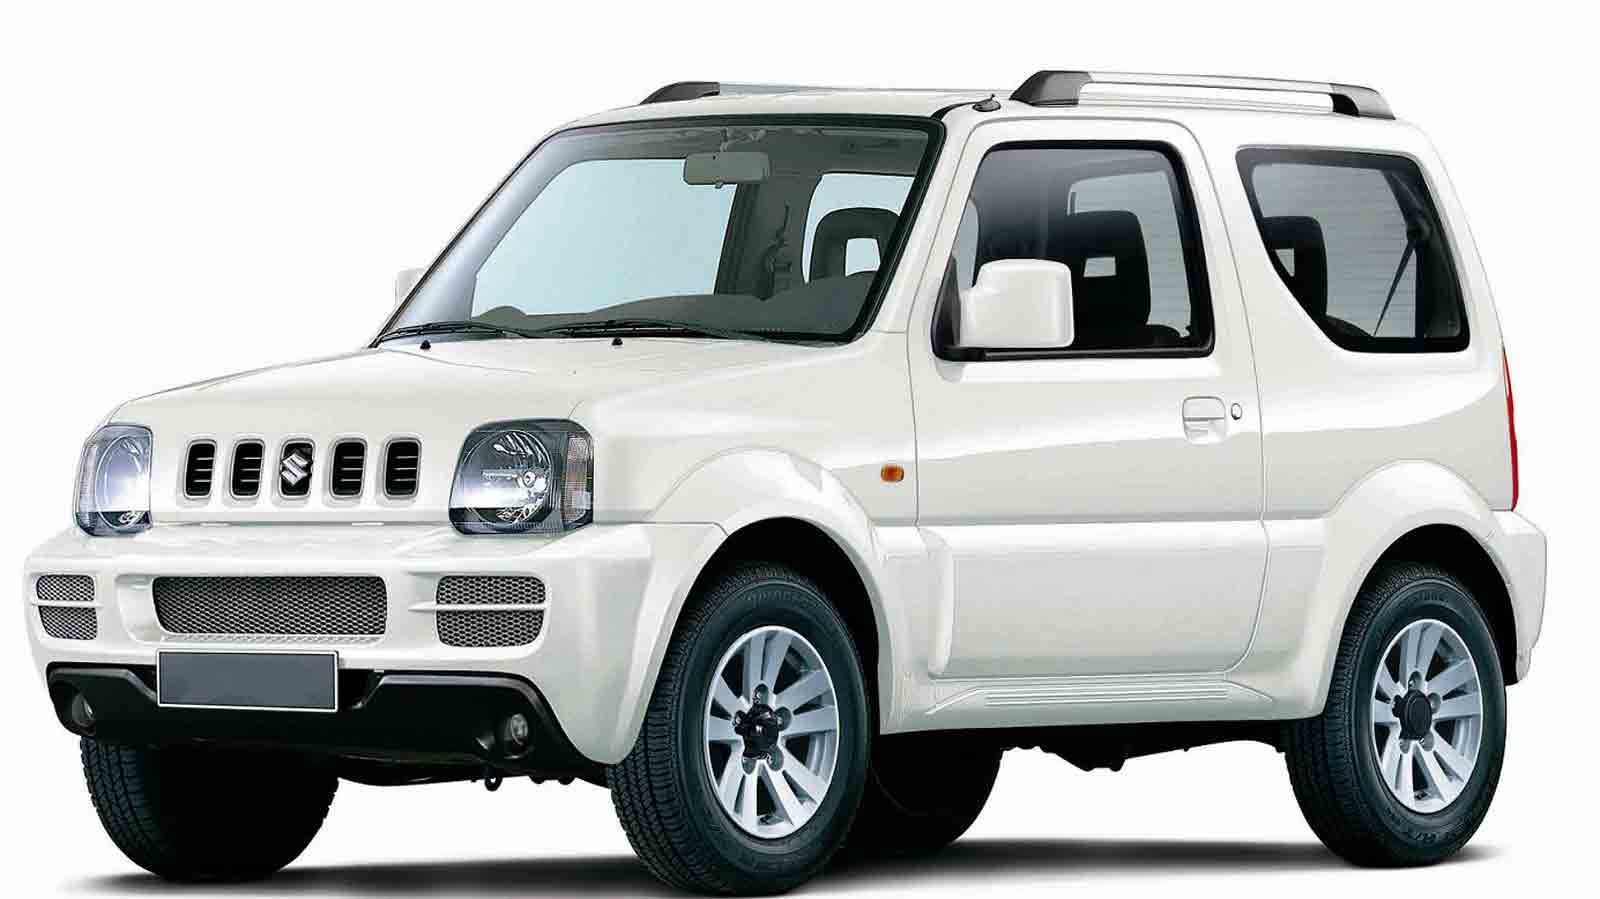 2015 suzuki jimny cabrio fj pictures information and specs auto. Black Bedroom Furniture Sets. Home Design Ideas